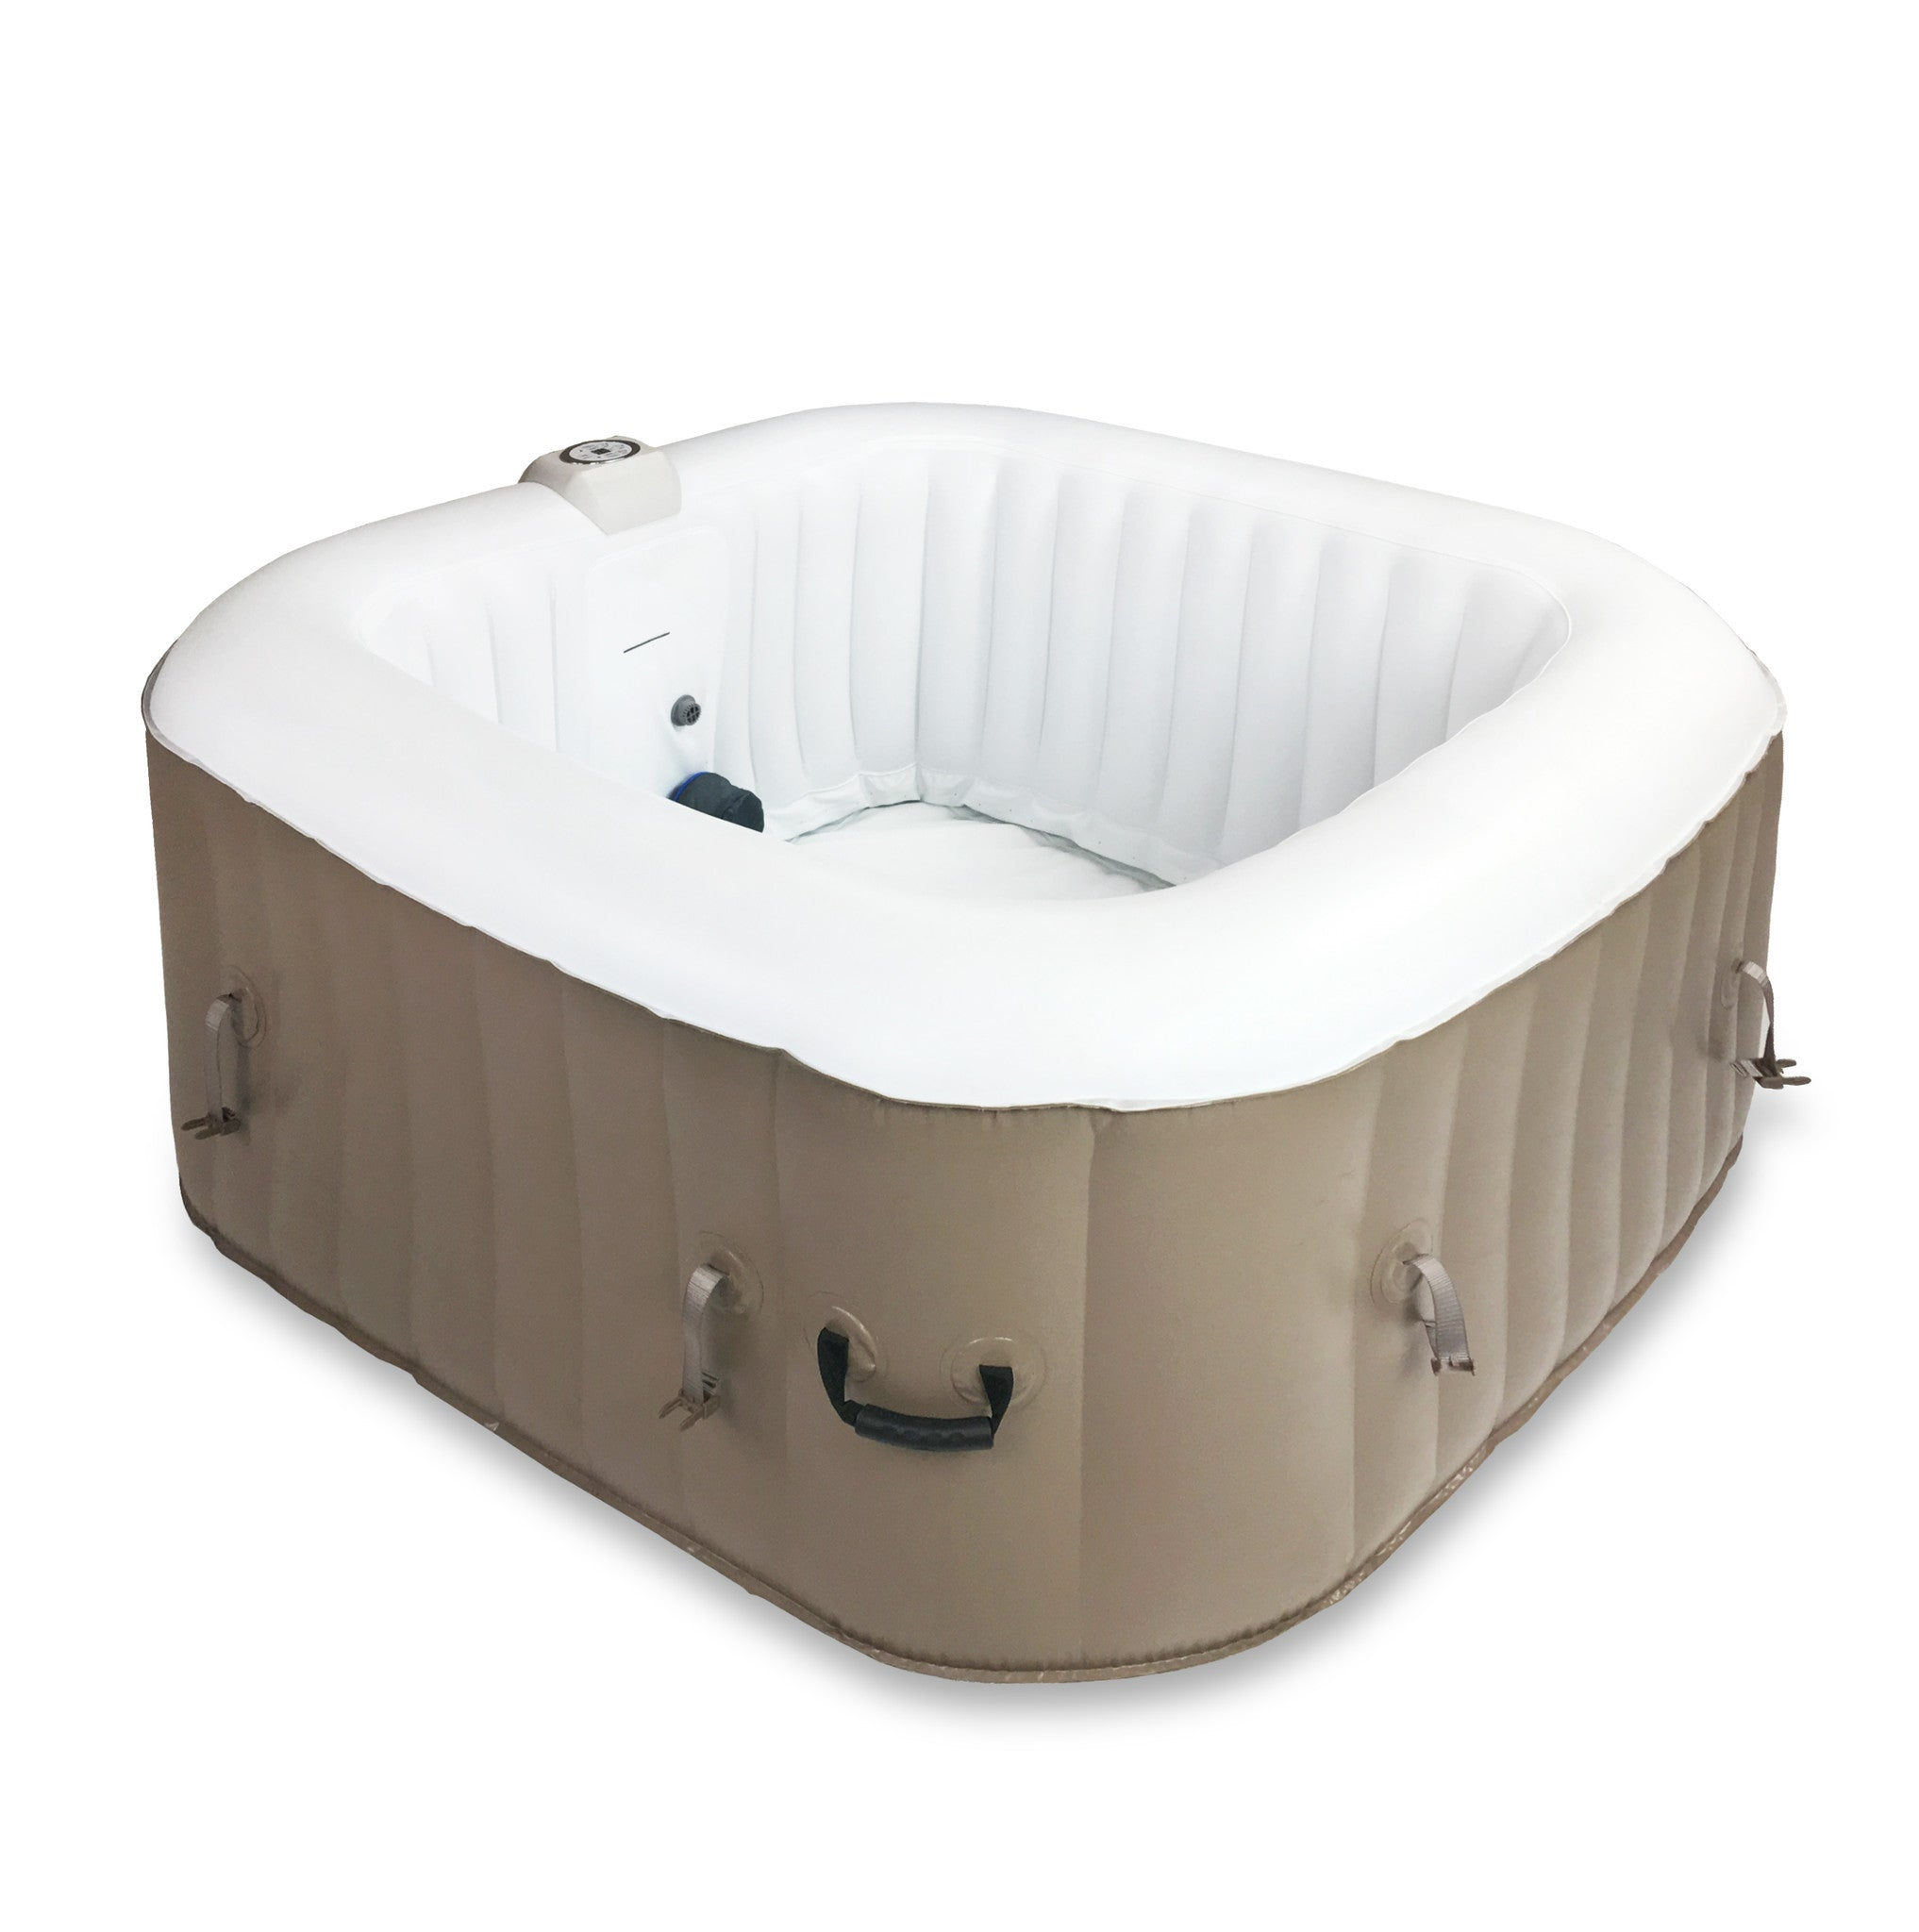 600 Inflatable Hot Tub